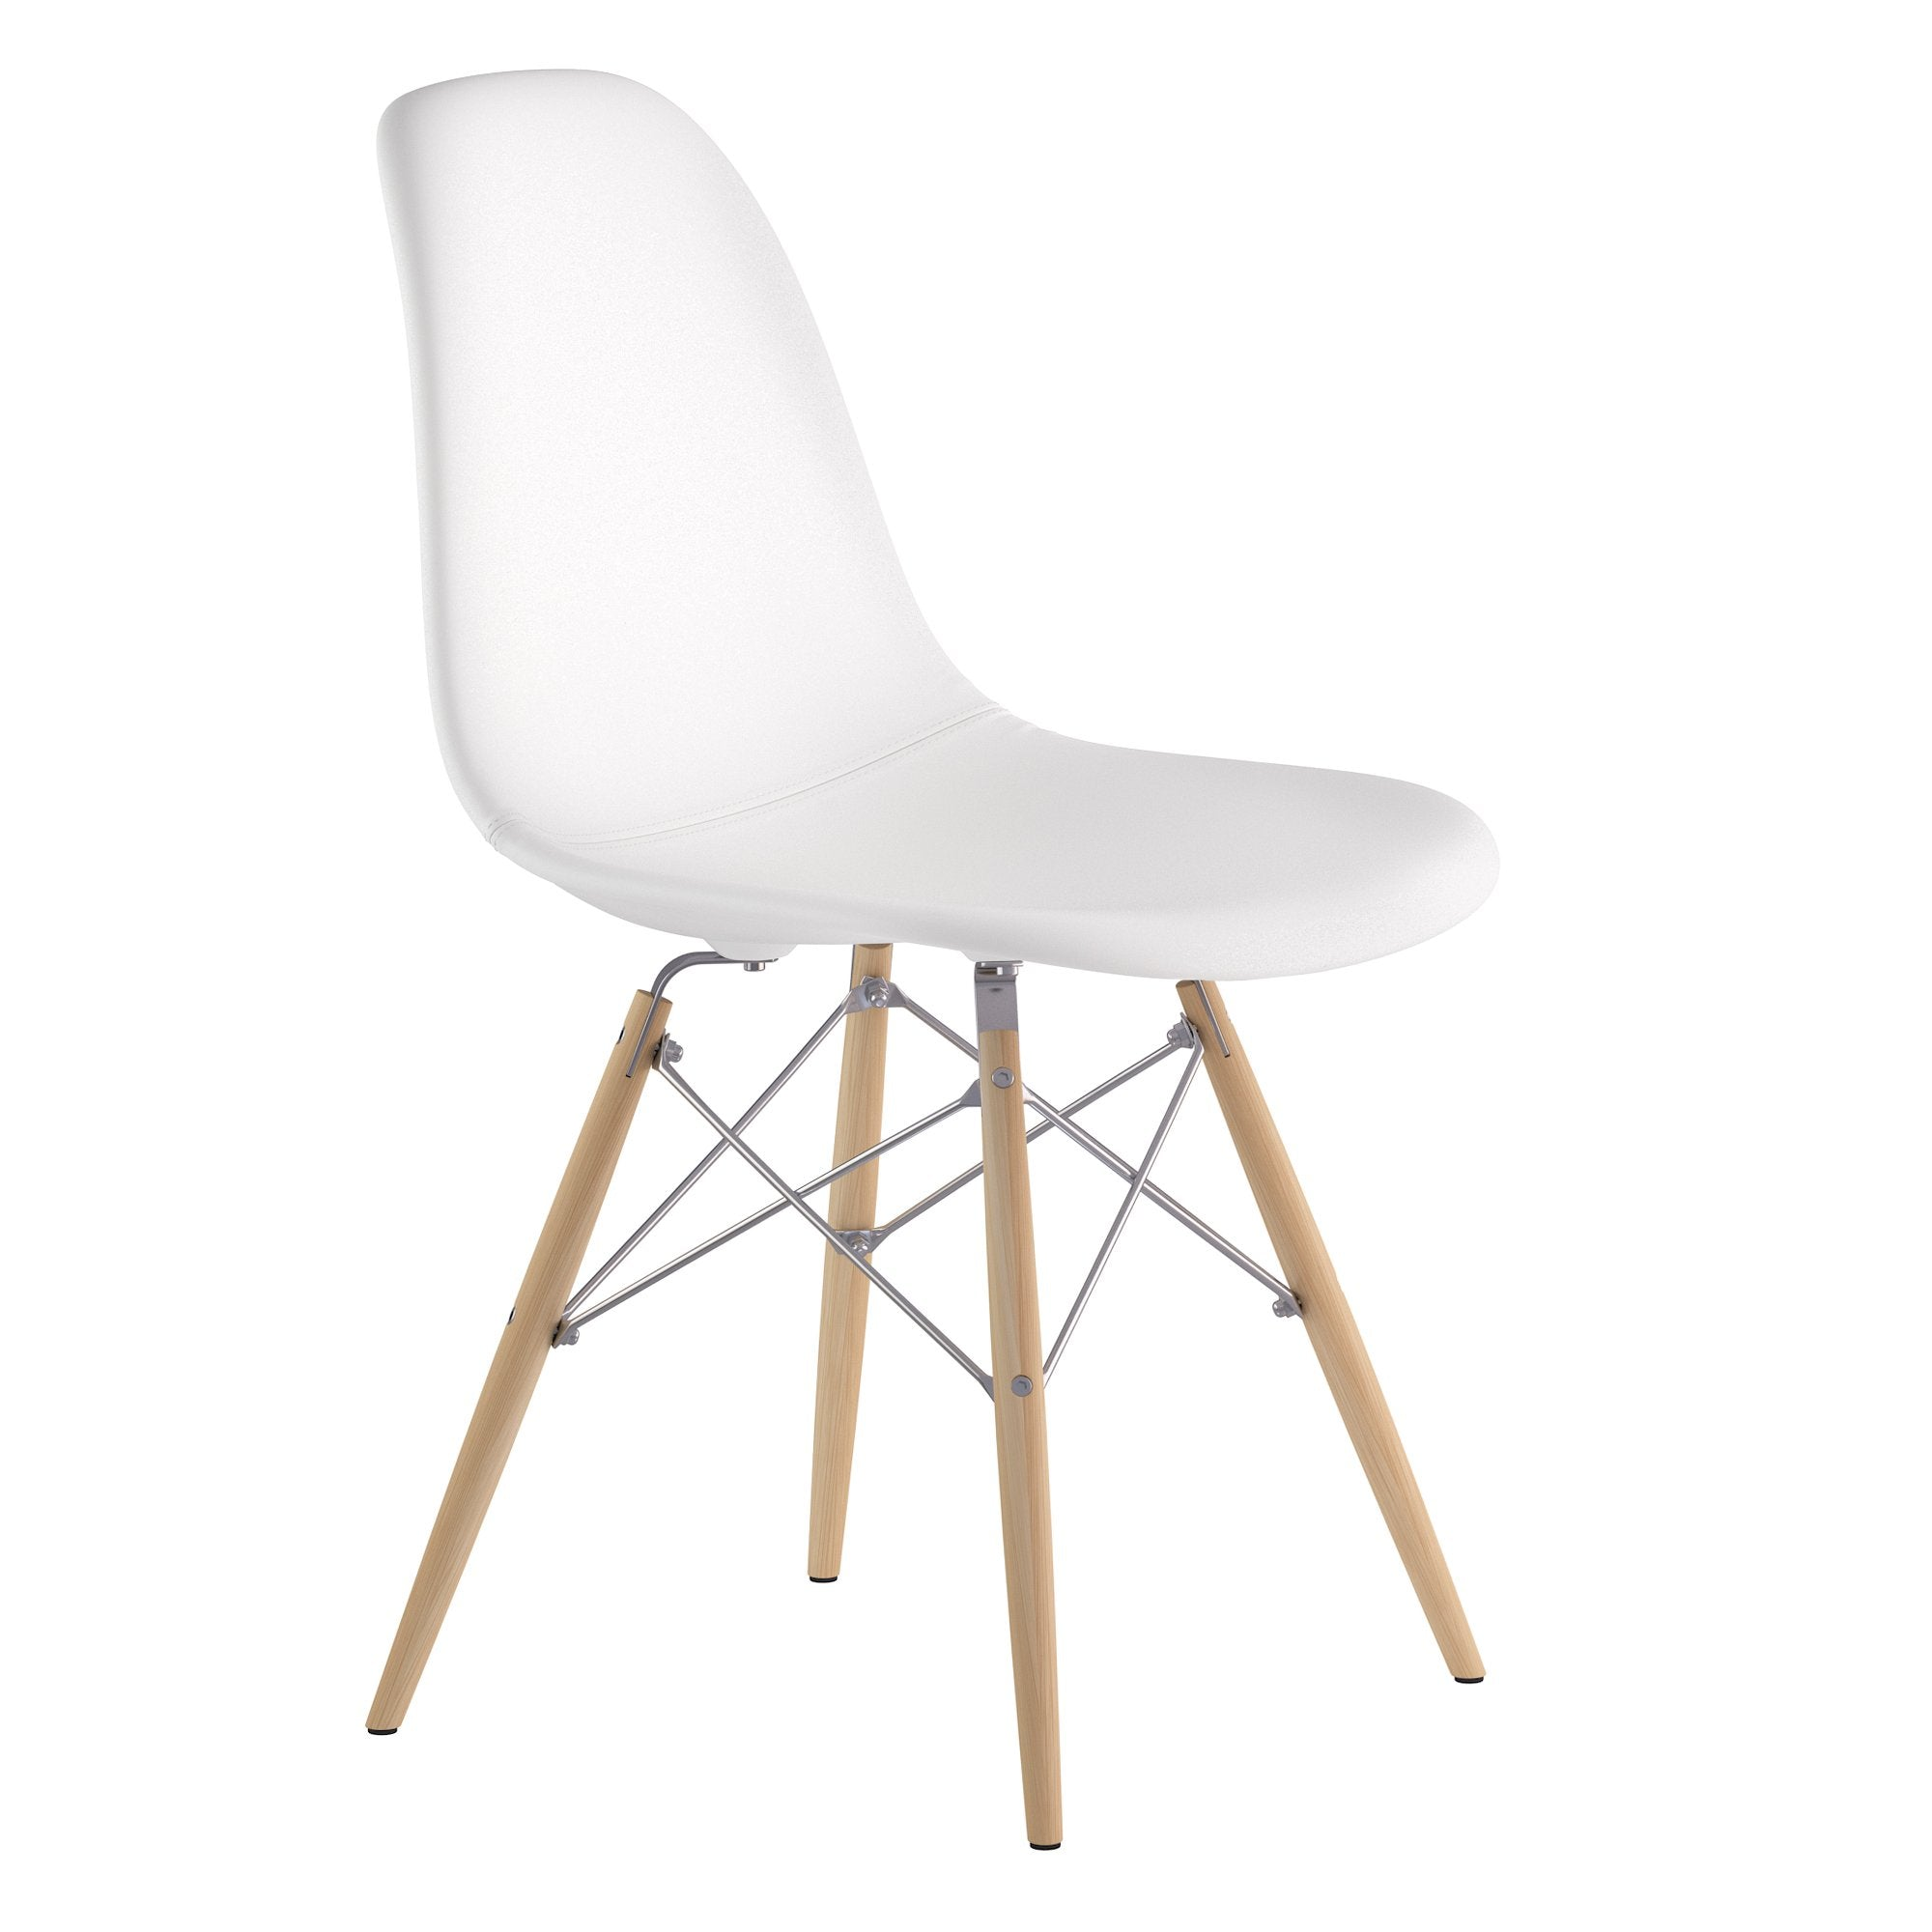 a0949c2f921 Mid Century Dowel Side Chair in Milano White Leather with Natural Wood  Legs-Accent Chairs ...